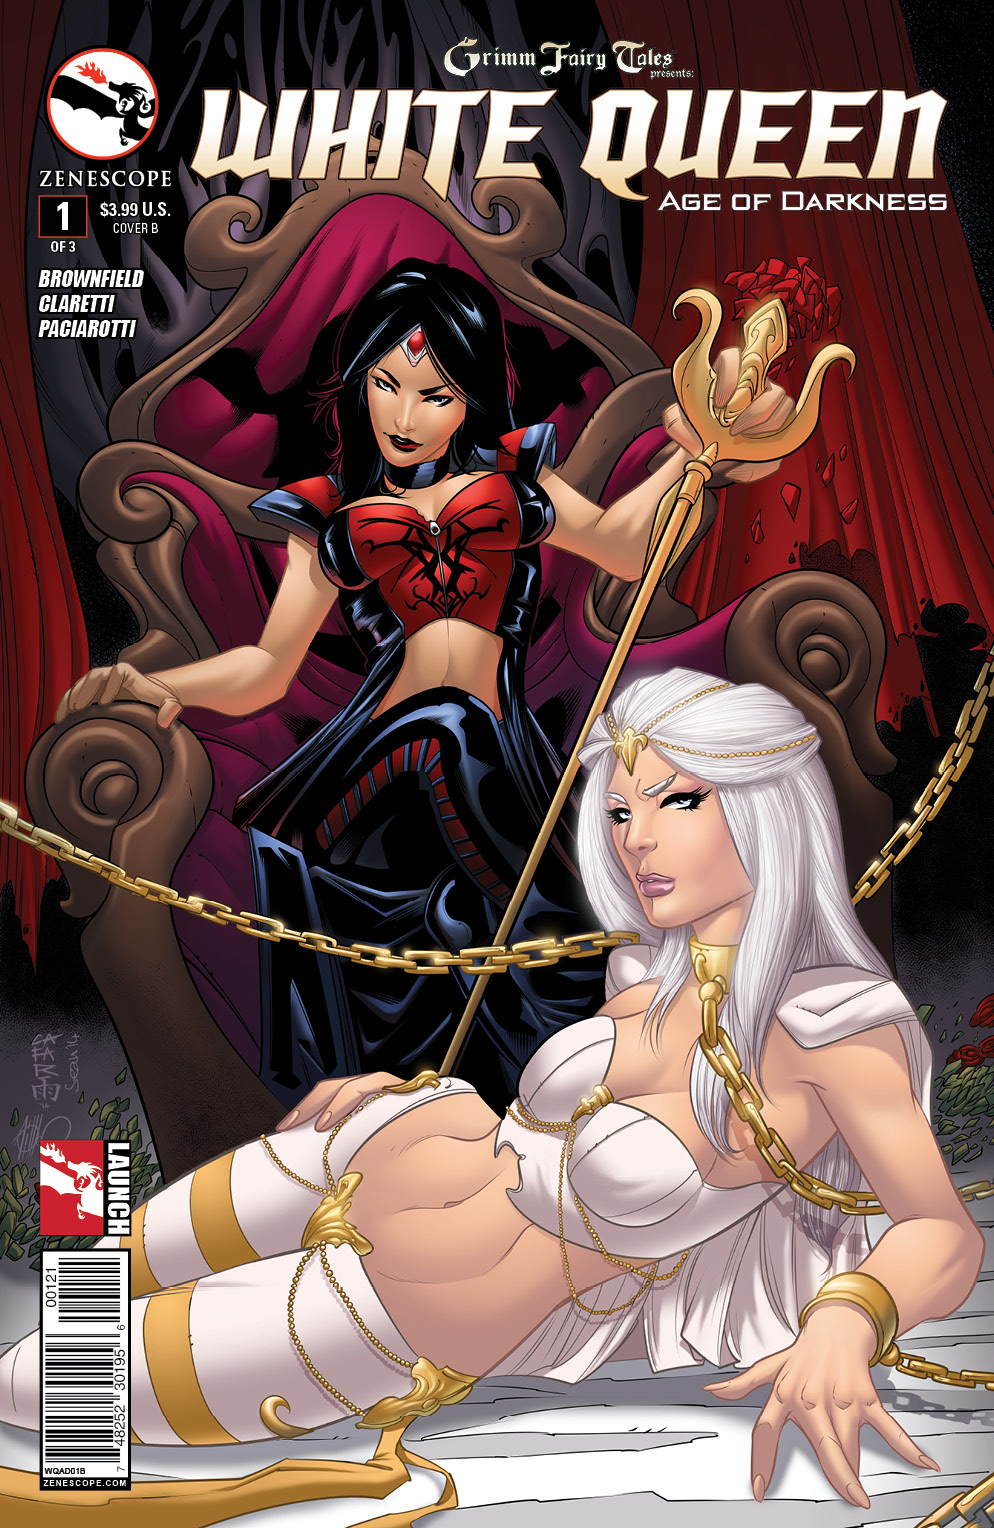 WhiteQueen_AOD_01_cover B